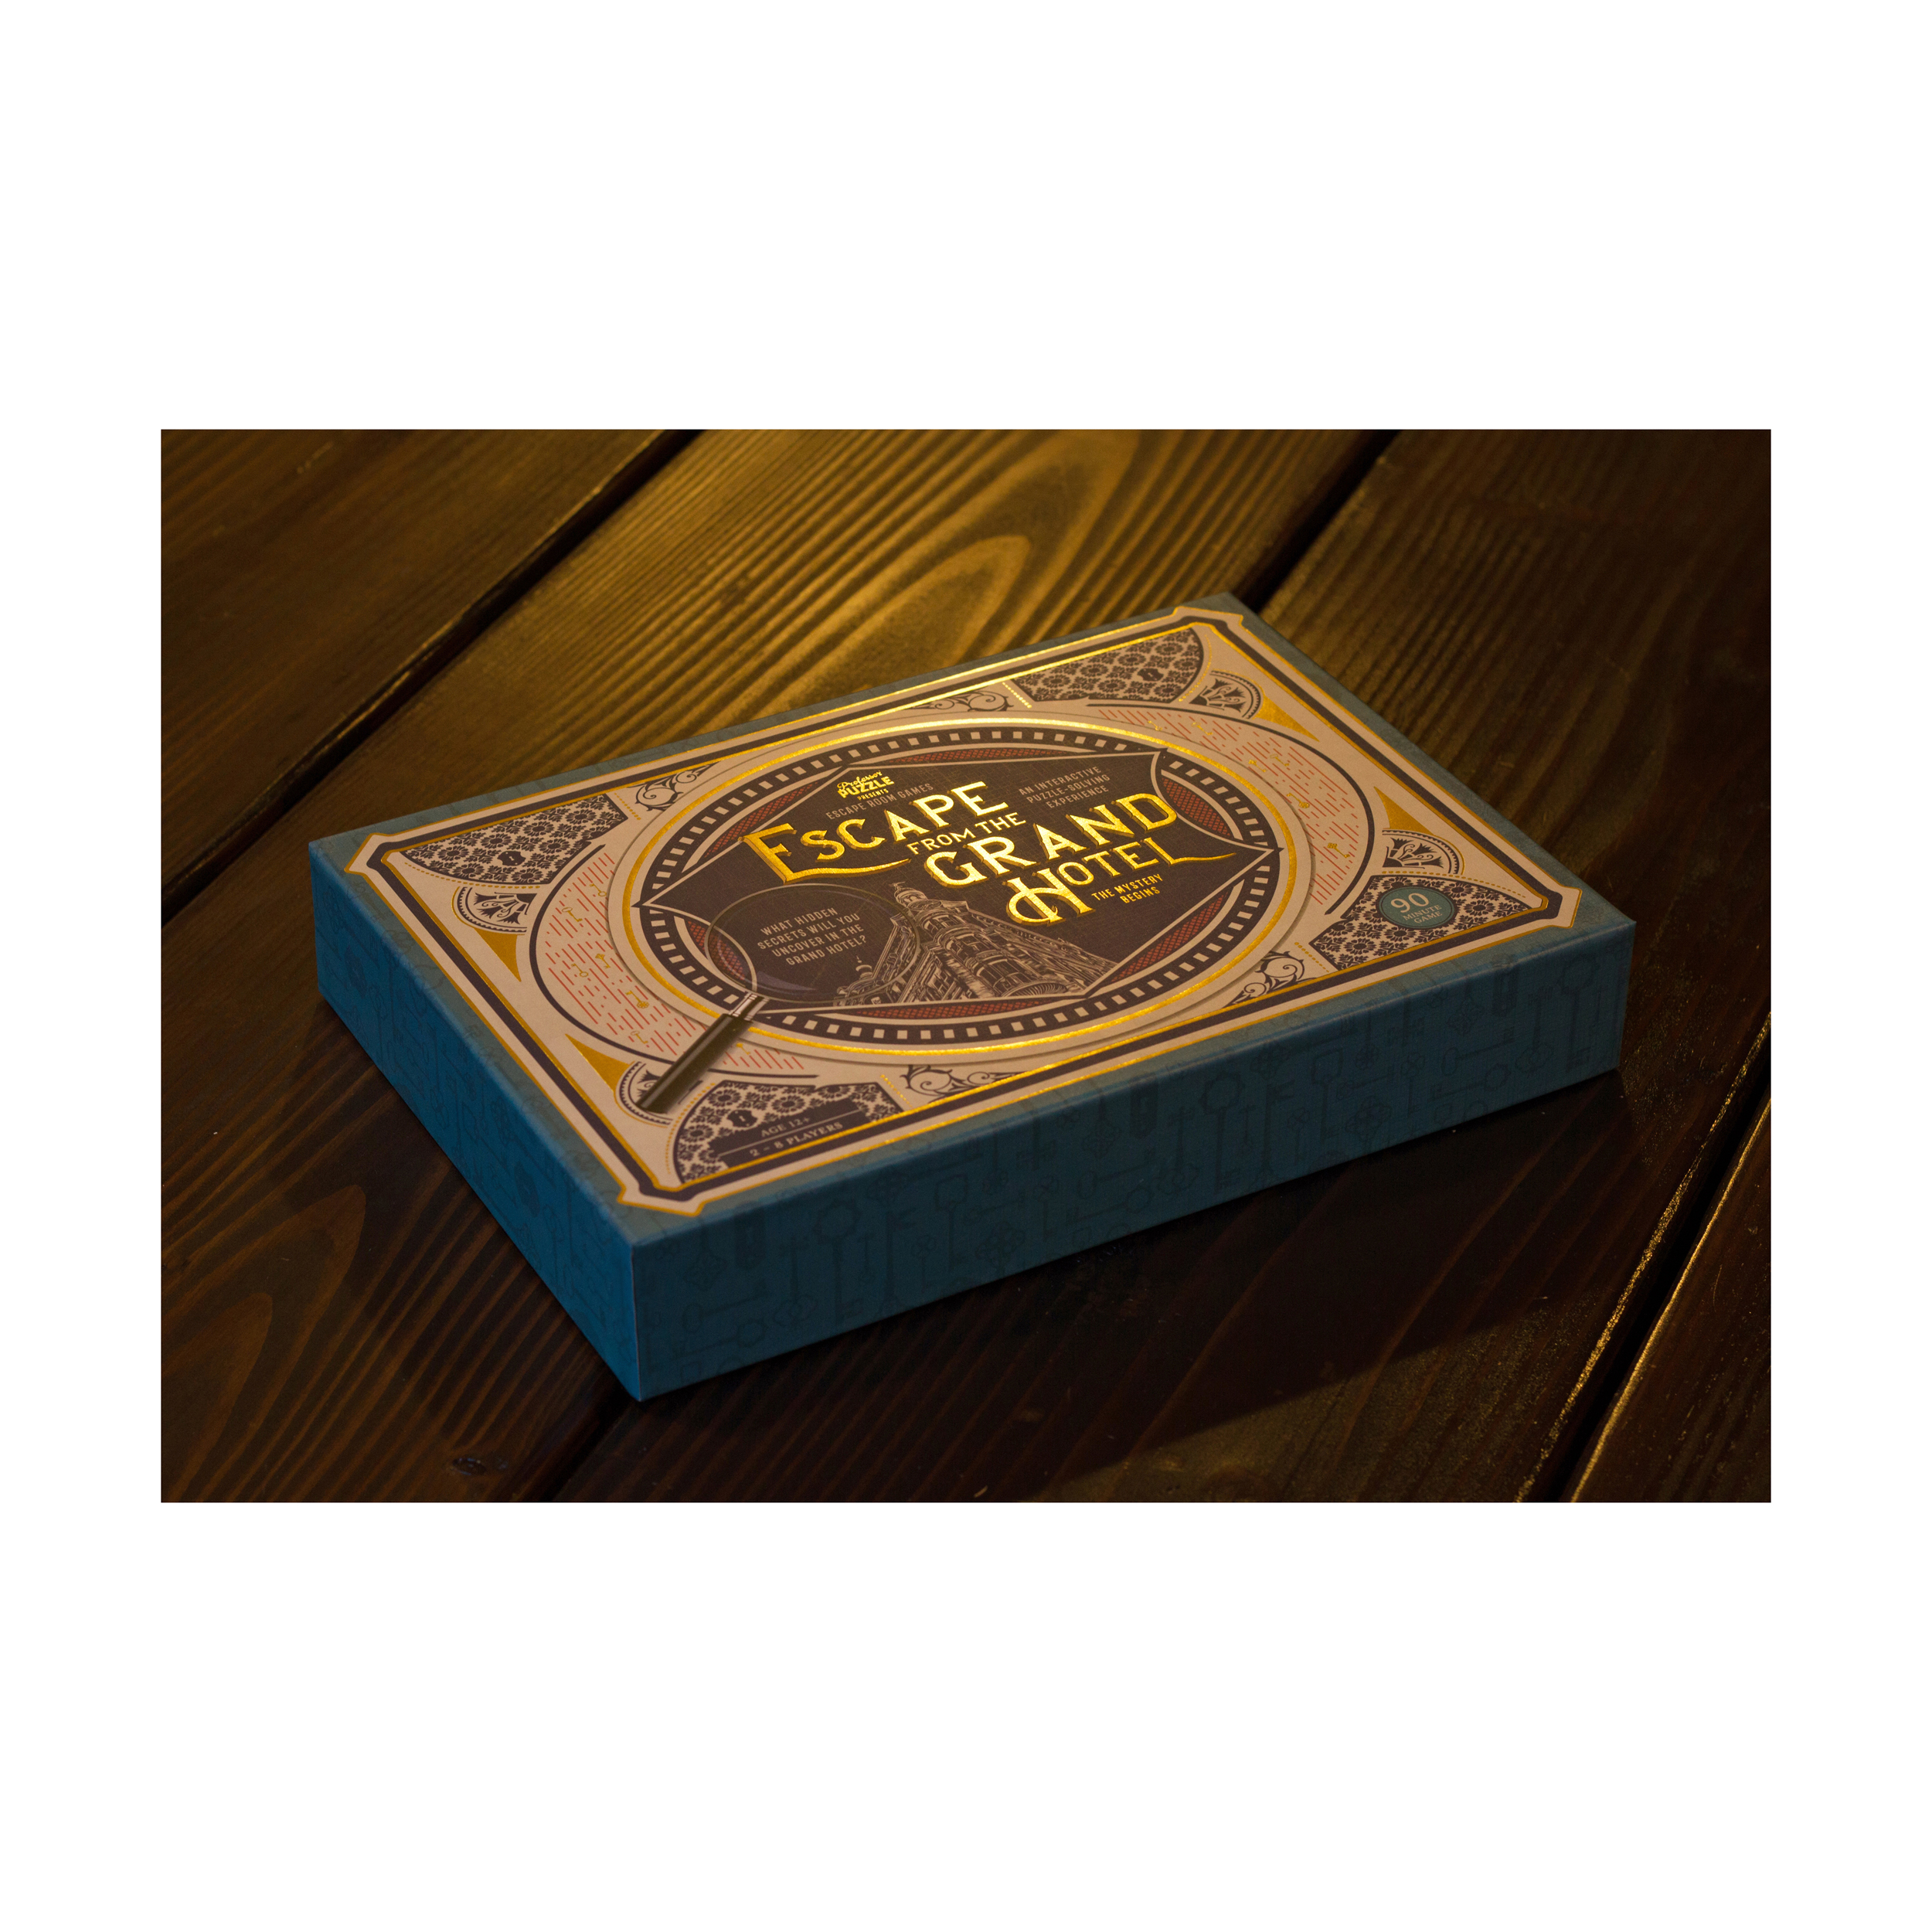 Toys Hobbies New Professor Puzzle Escape From The Grand Hotel Game Brain Teasing Game 360mediath